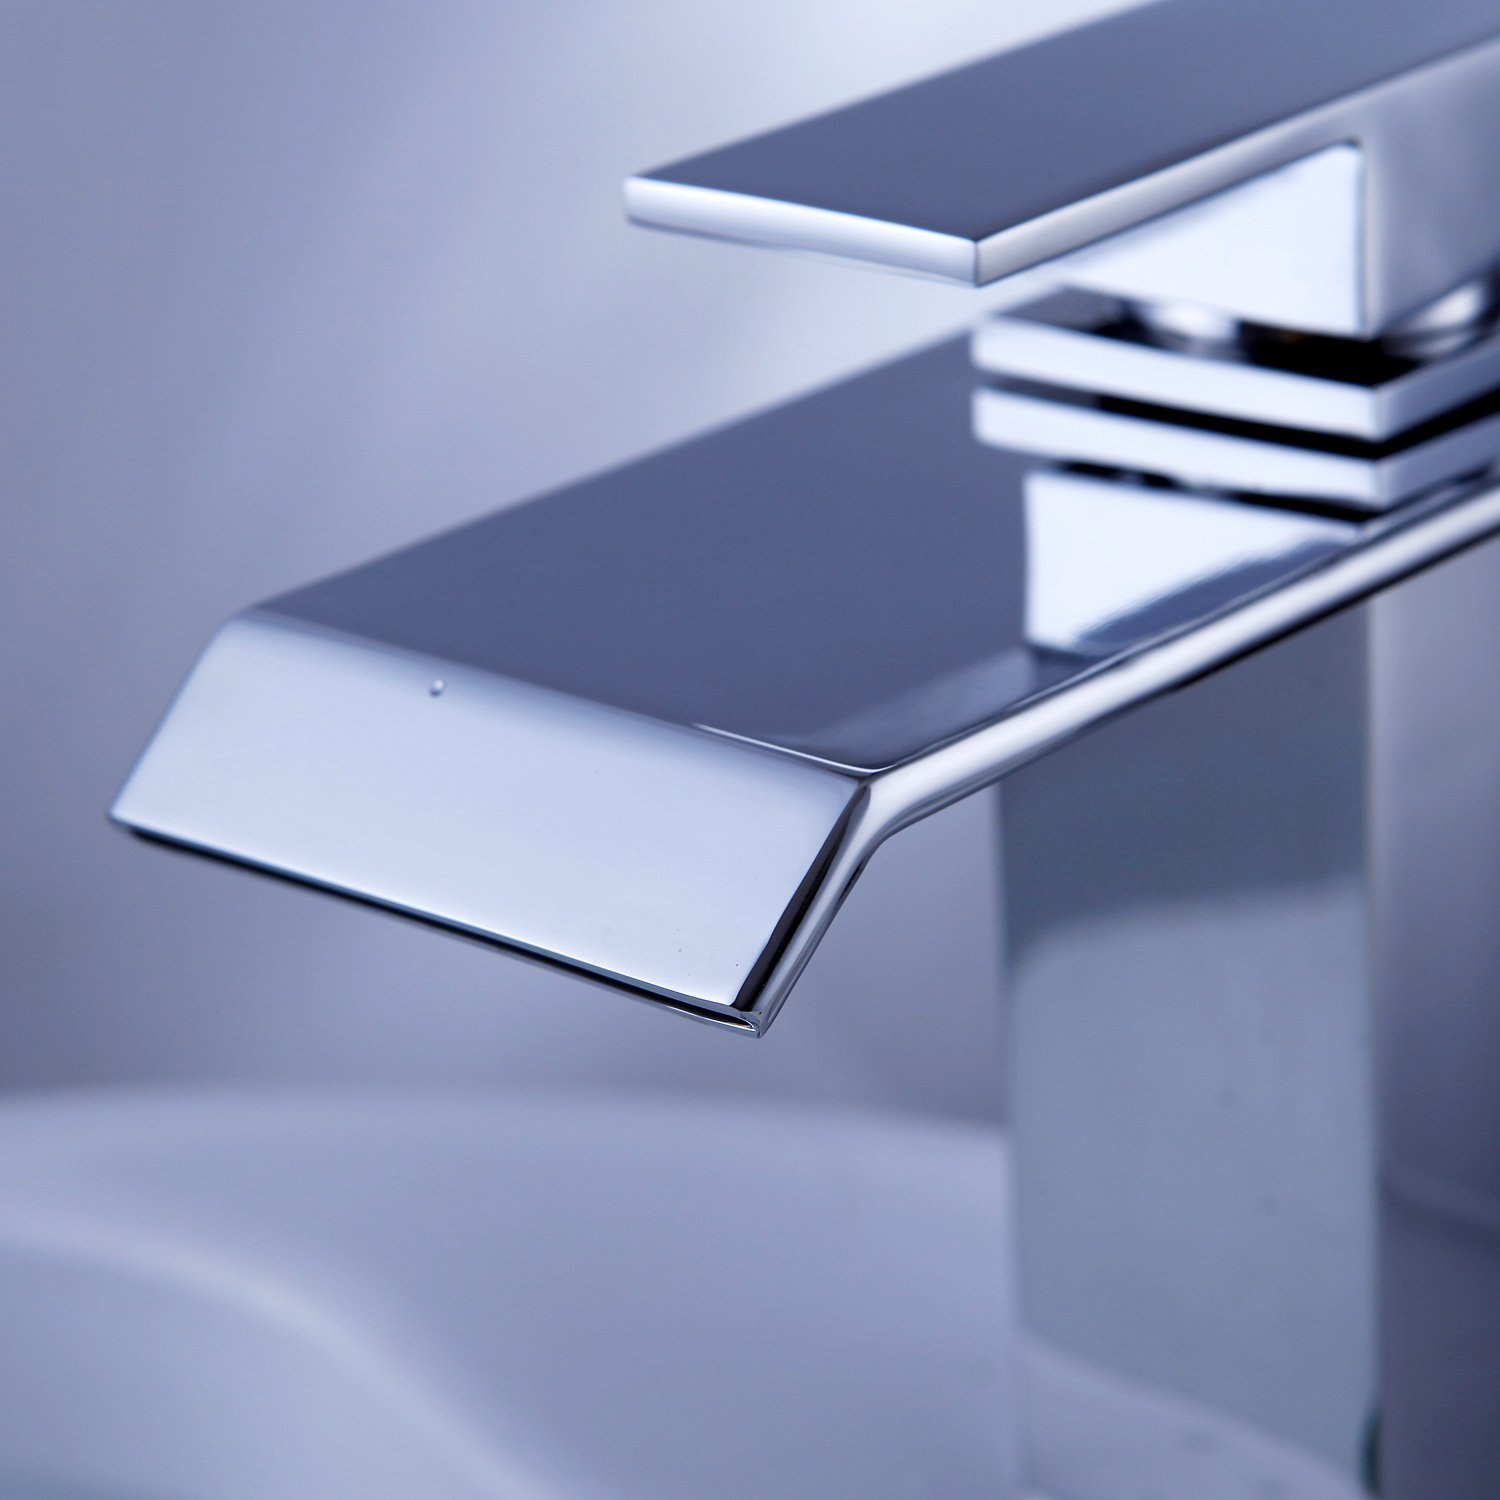 sensor nautic and controlled quality faucets bathroom en product products sink design faucet gustavsberg